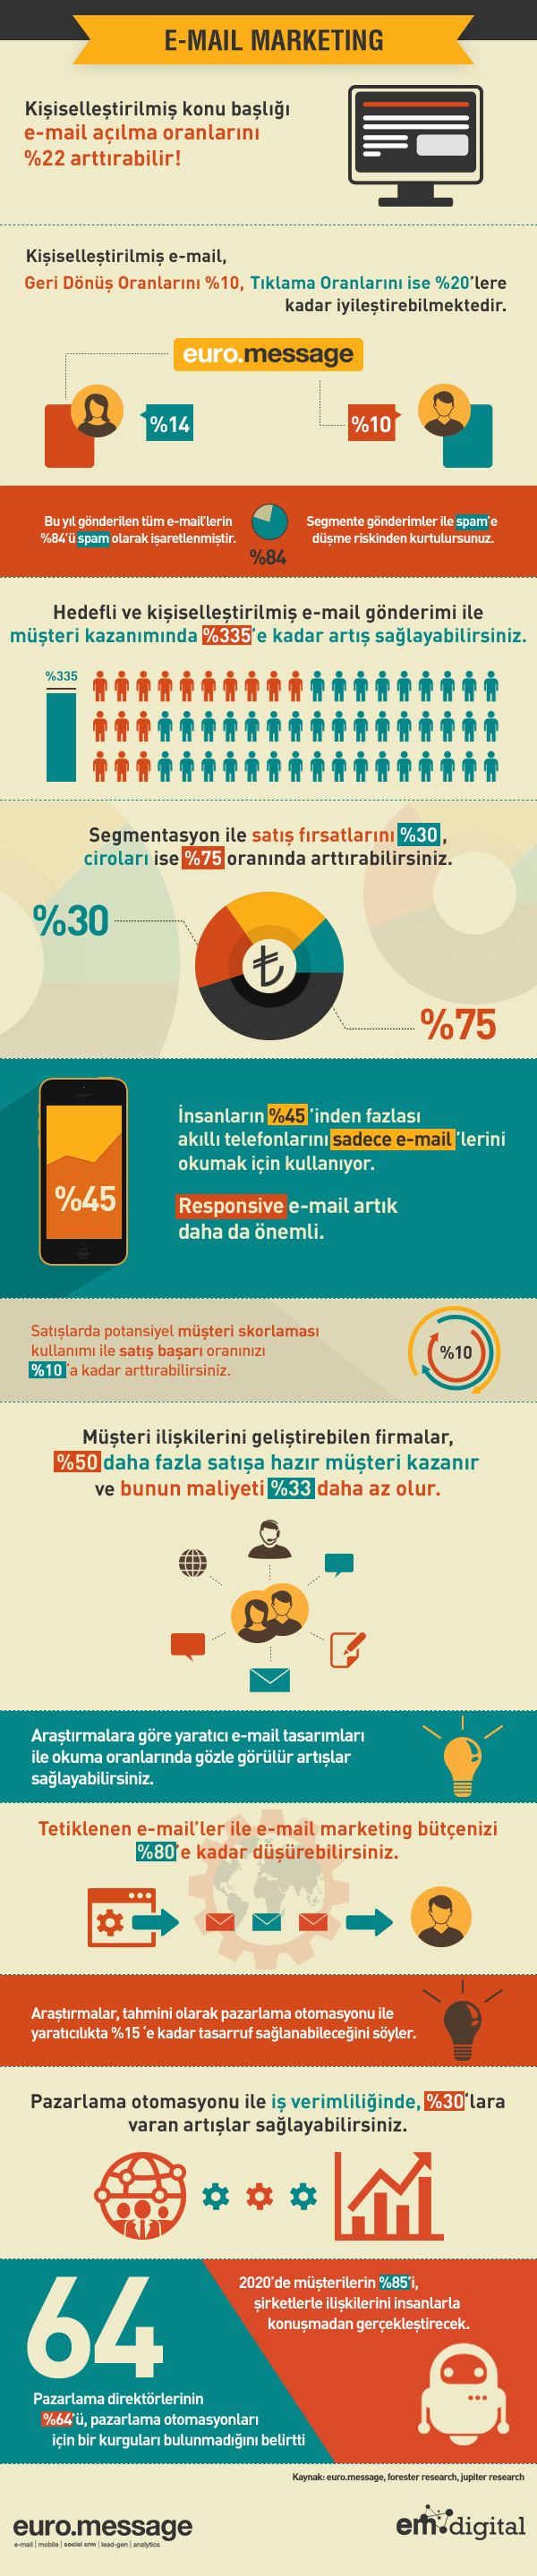 email_marketing_infografik